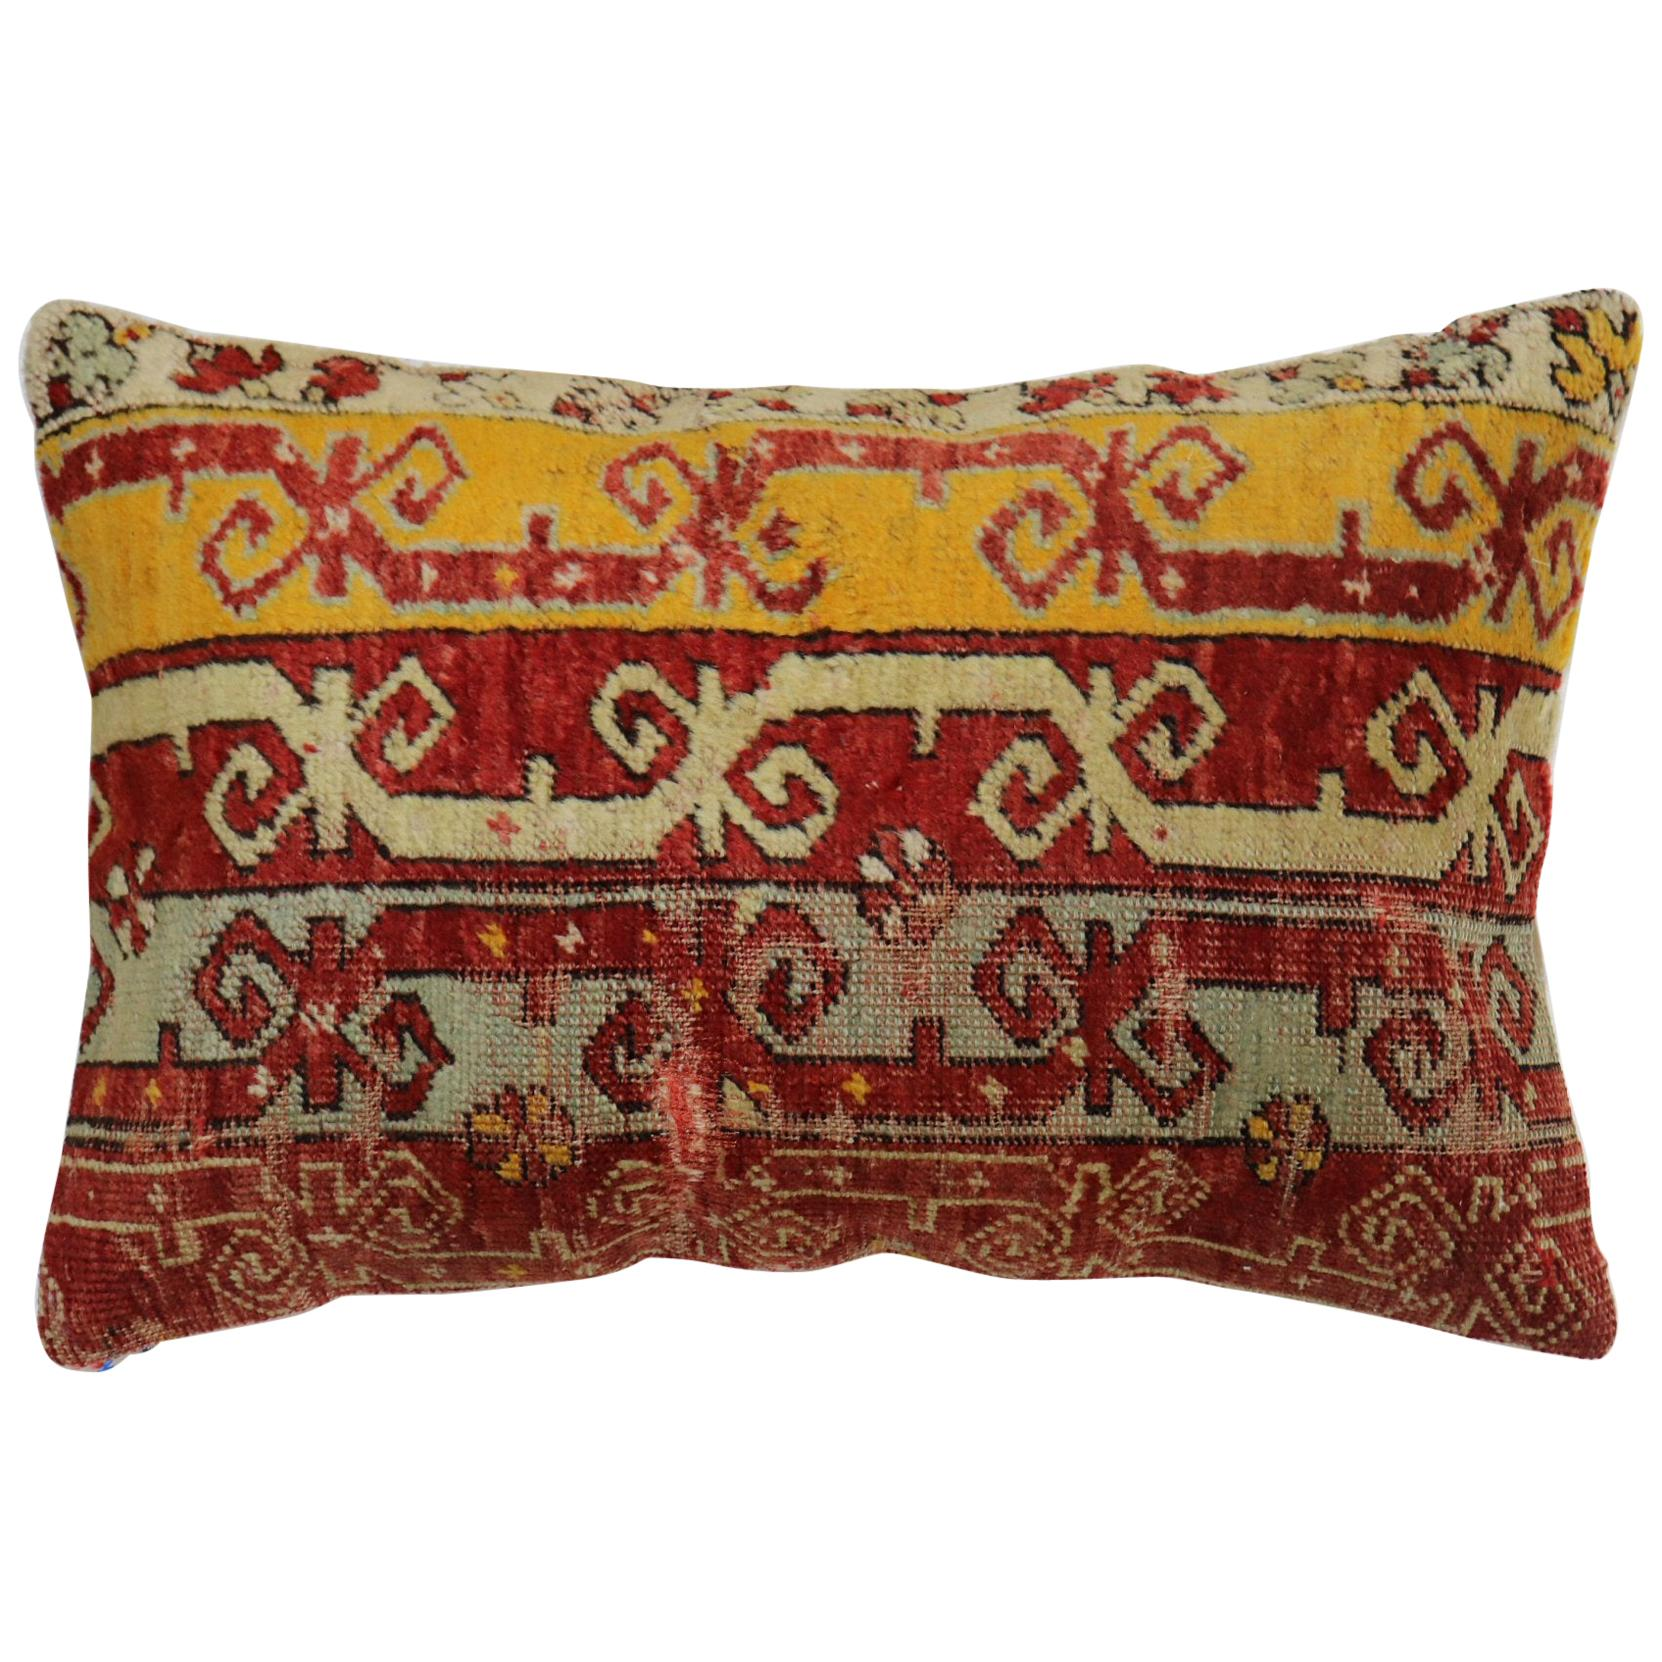 Colorful Turkish Ghiordes Rug Pillow